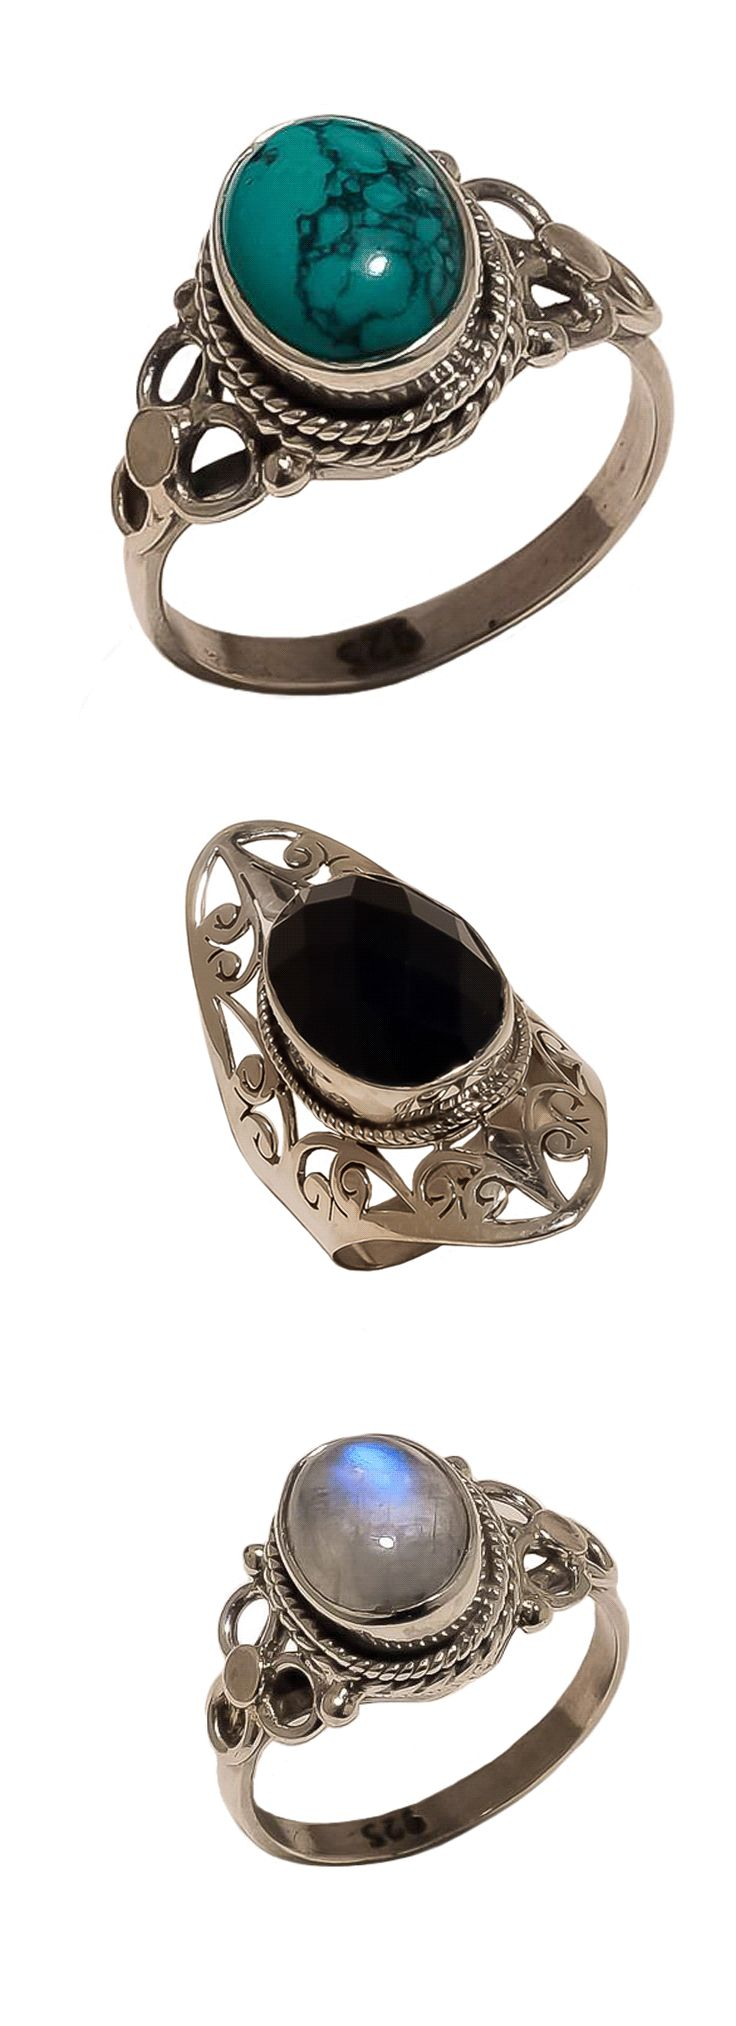 Shop witchy gypsy rings at RebelsMarket!